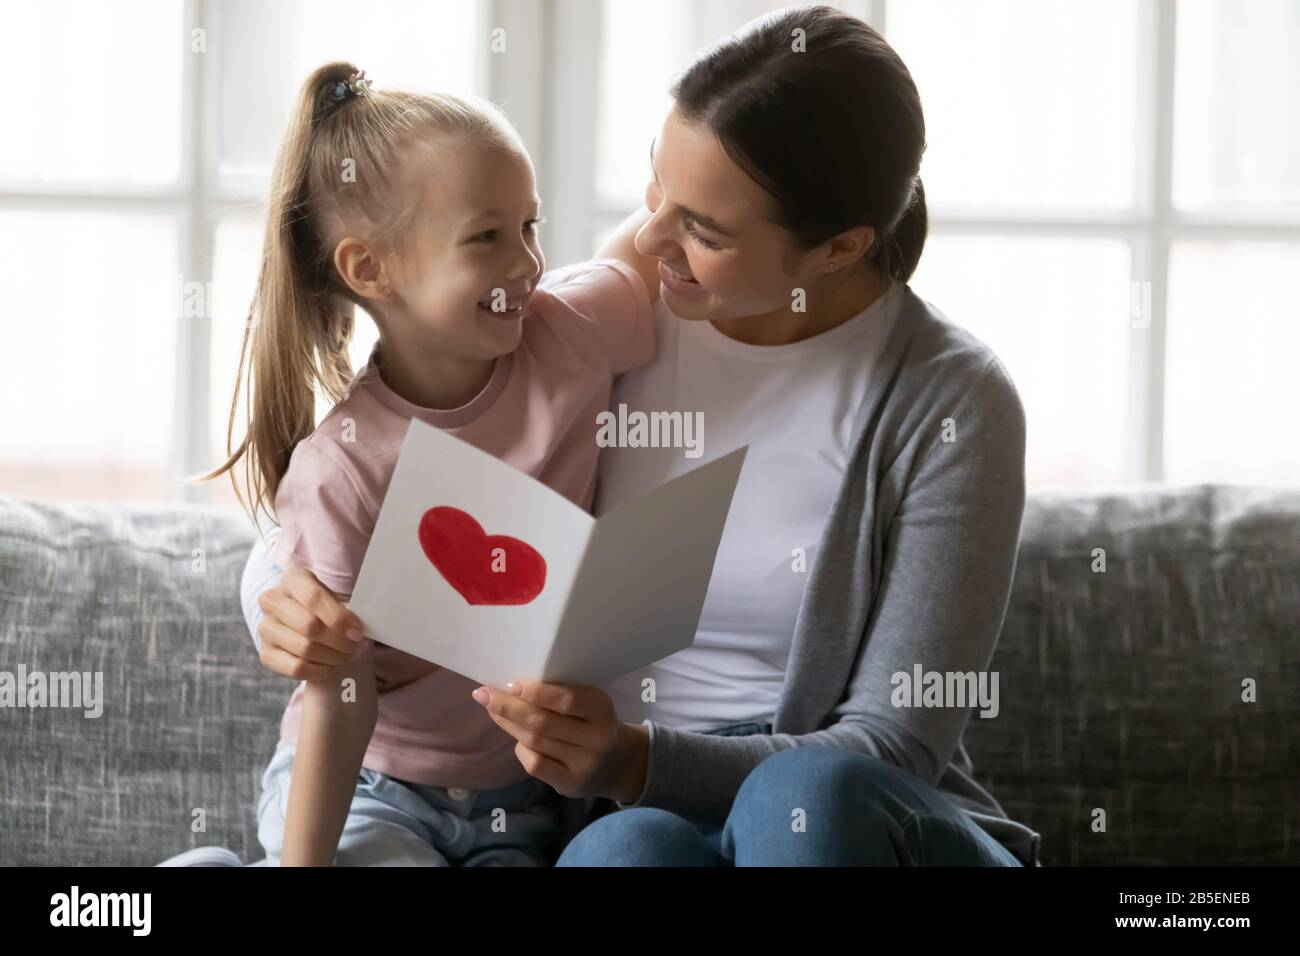 Affectionate Loving Mother Embracing Little Daughter Reading Congratulations In Card Stock Photo Alamy